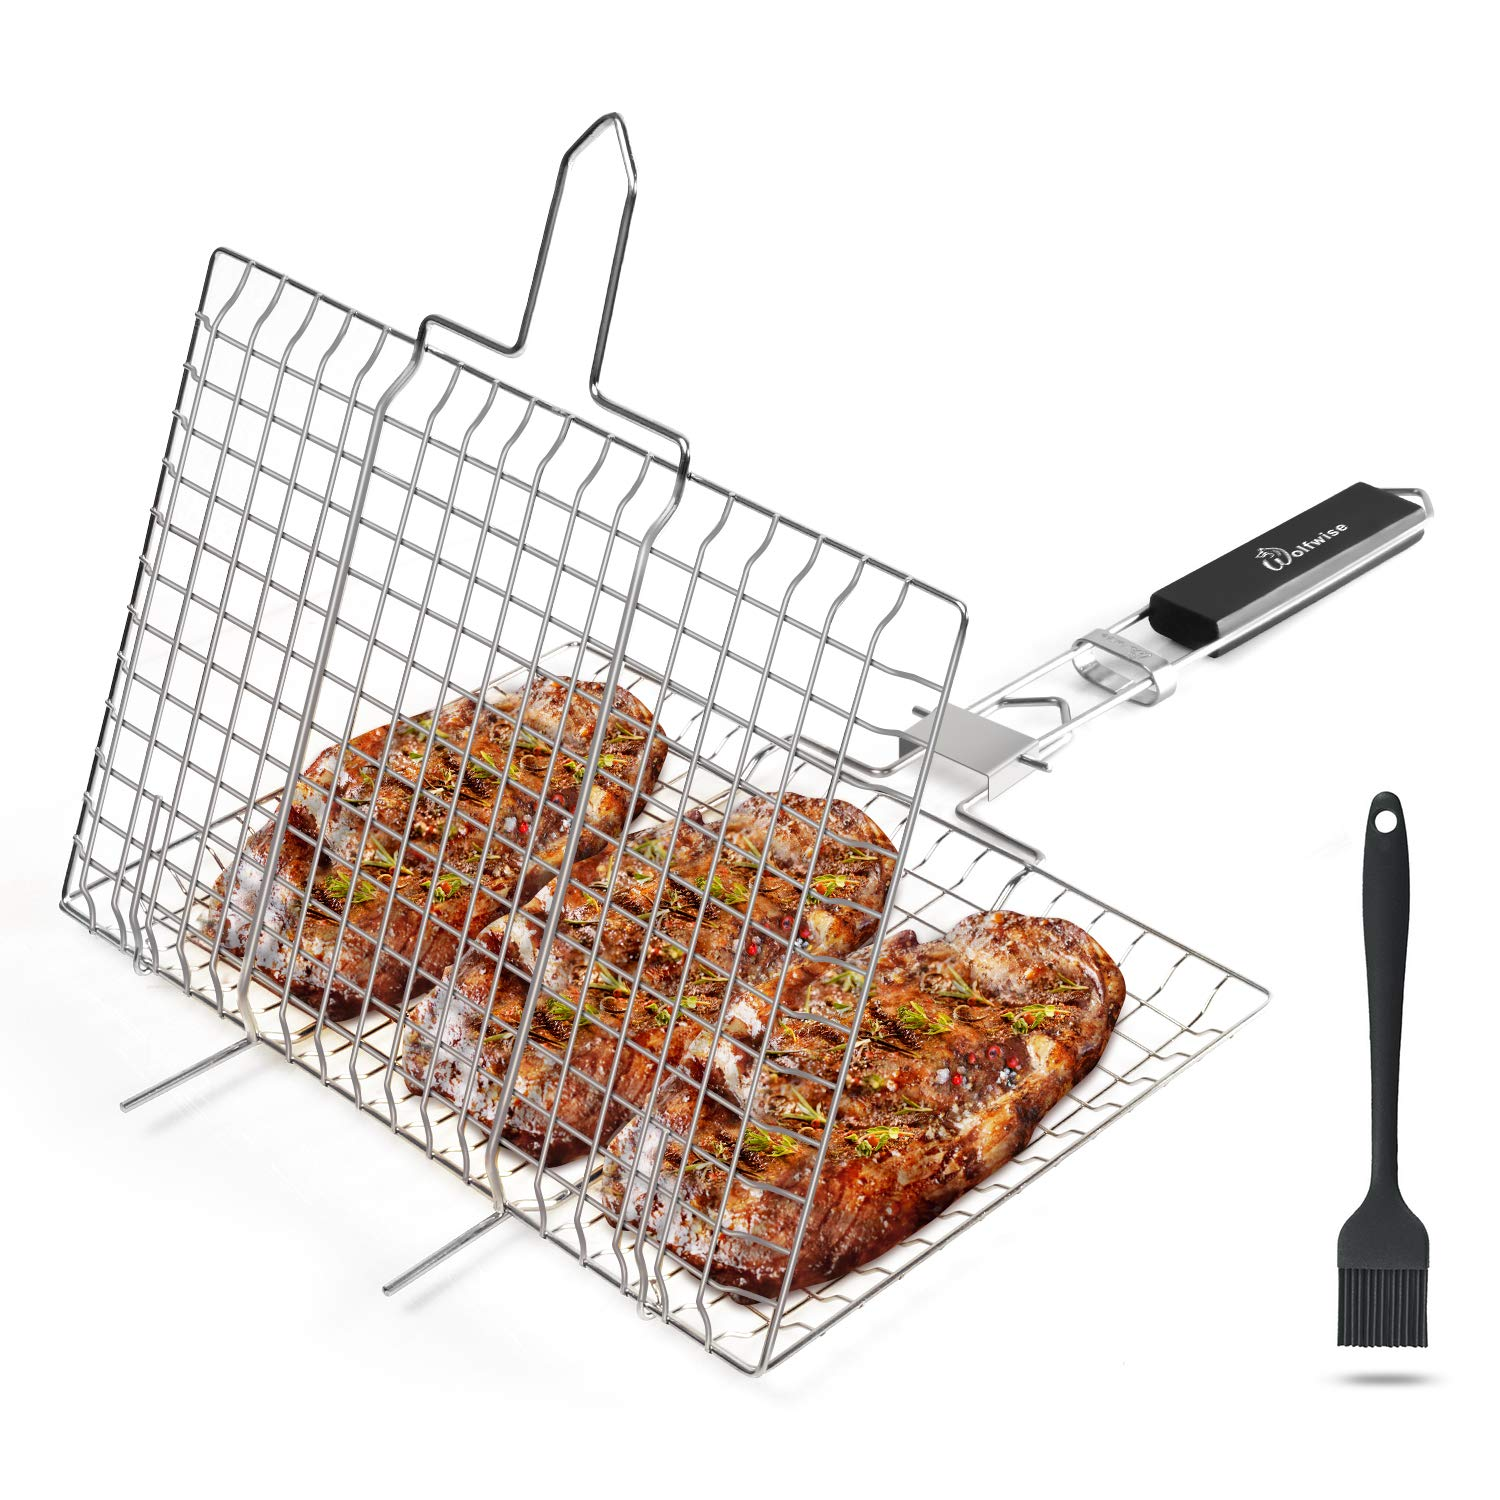 WolfWise Stainless Steel Portable BBQ Grilling Basket for Fish Vegetable Steak Shrimp with an Additional Basting Brush by WolfWise